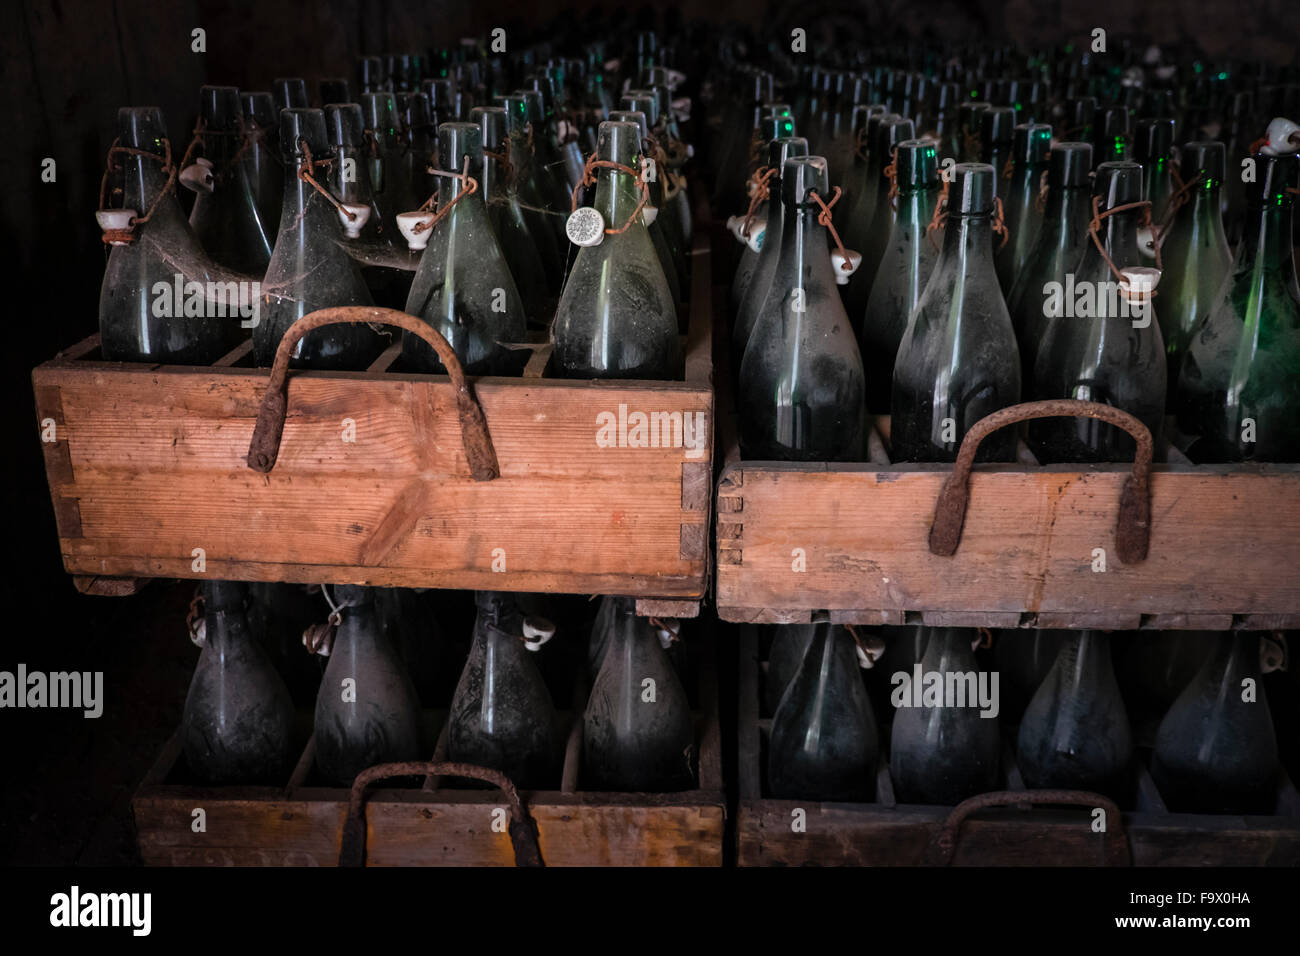 Germany, Burghausen, old wooden beer crates with empty beer bottles at Raitenhaslach Abbey - Stock Image